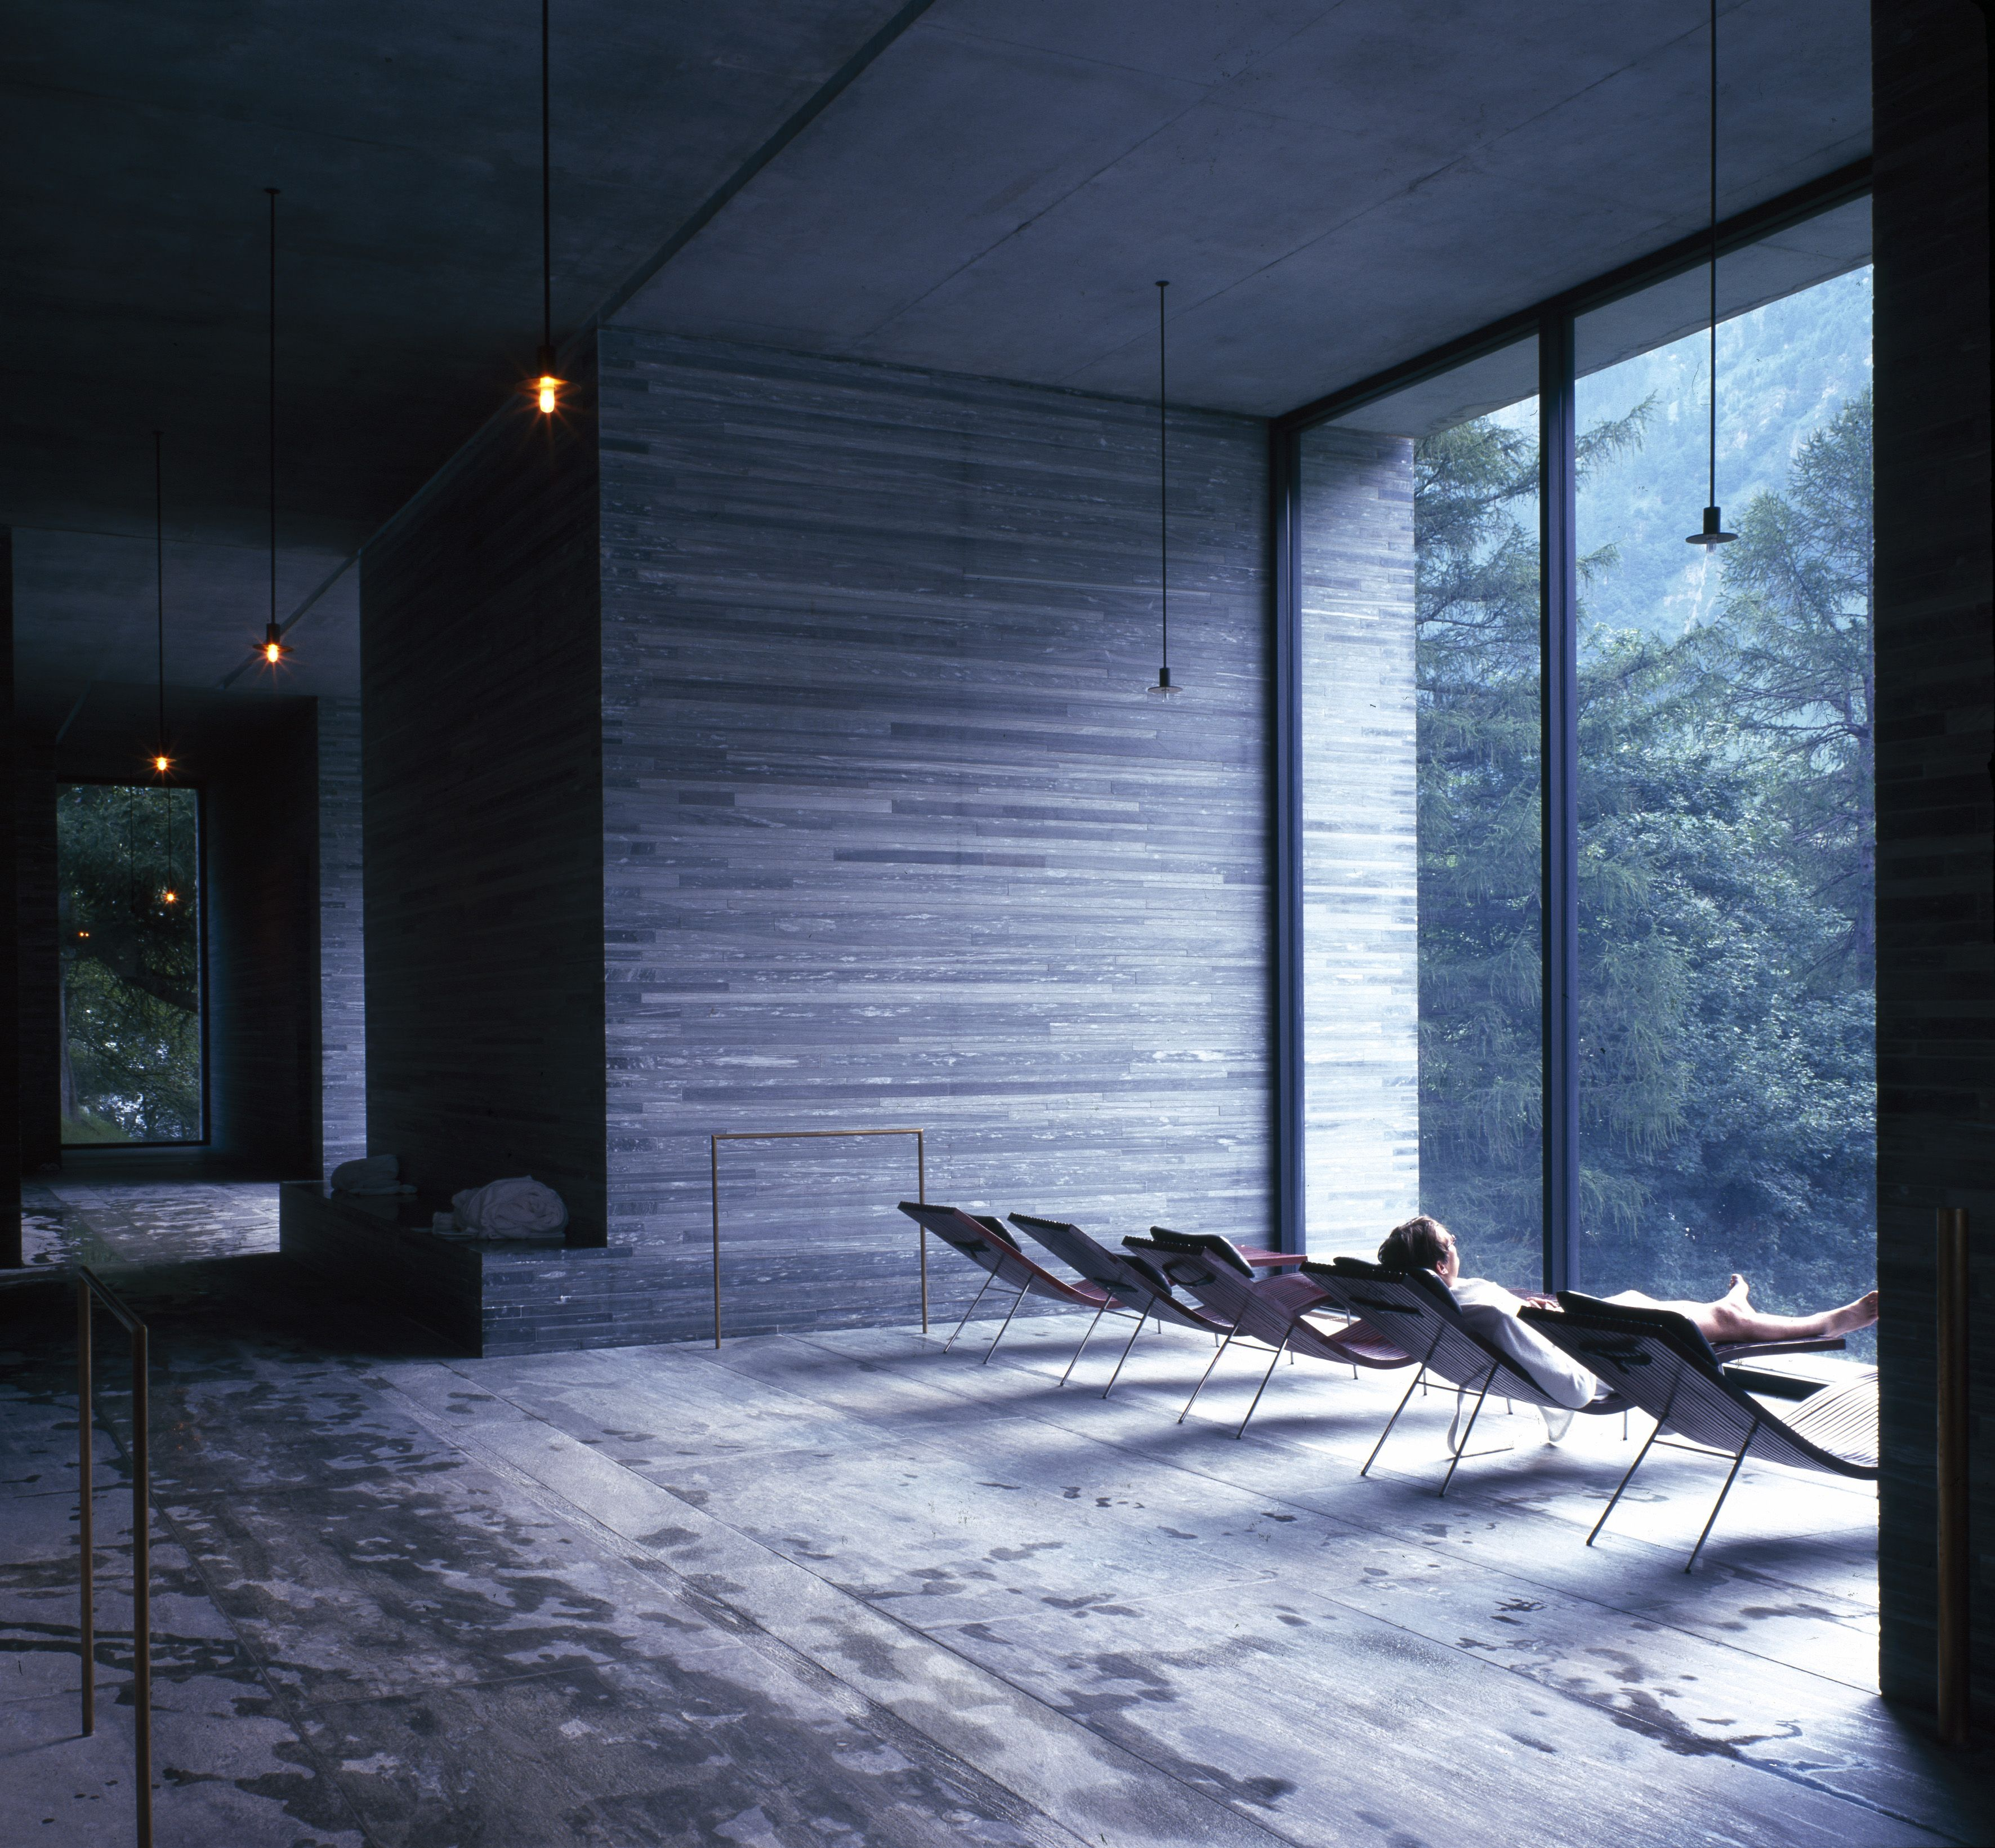 Peter Zumthor idealizes this idea in much of his work including the ...